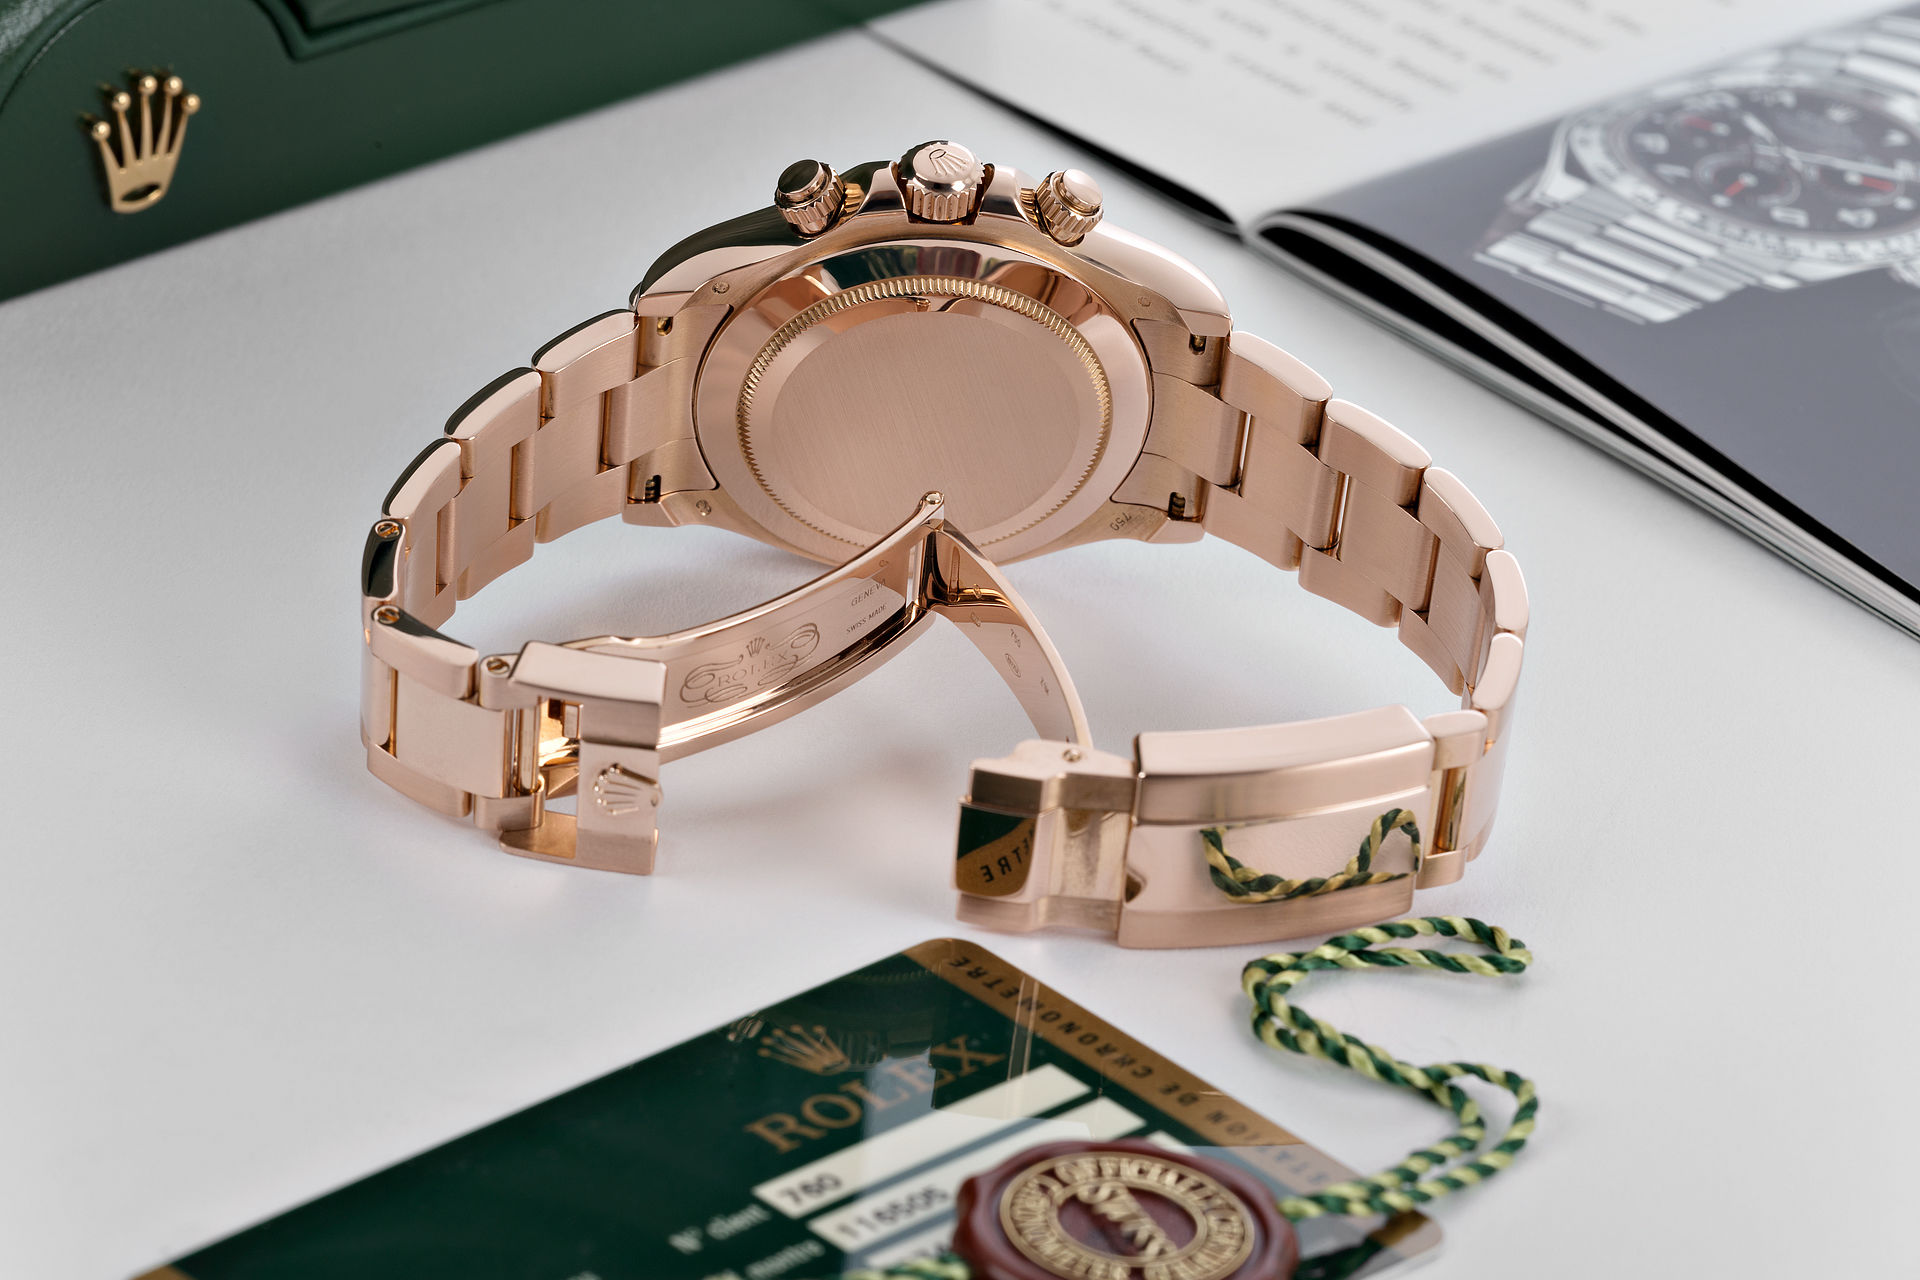 ref 116505 | 18ct Everose Gold 'Full Set' | Rolex Cosmograph Daytona